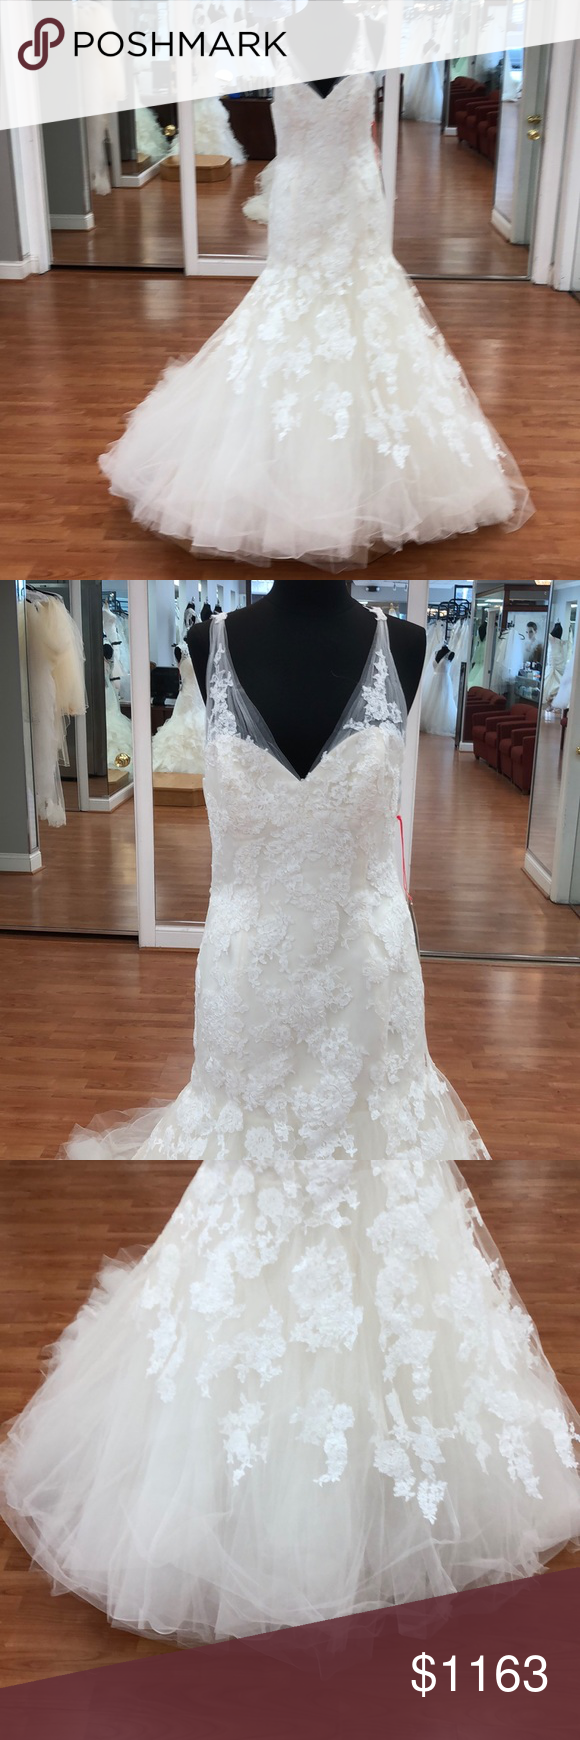 Ivory wedding gown with lace Ivory